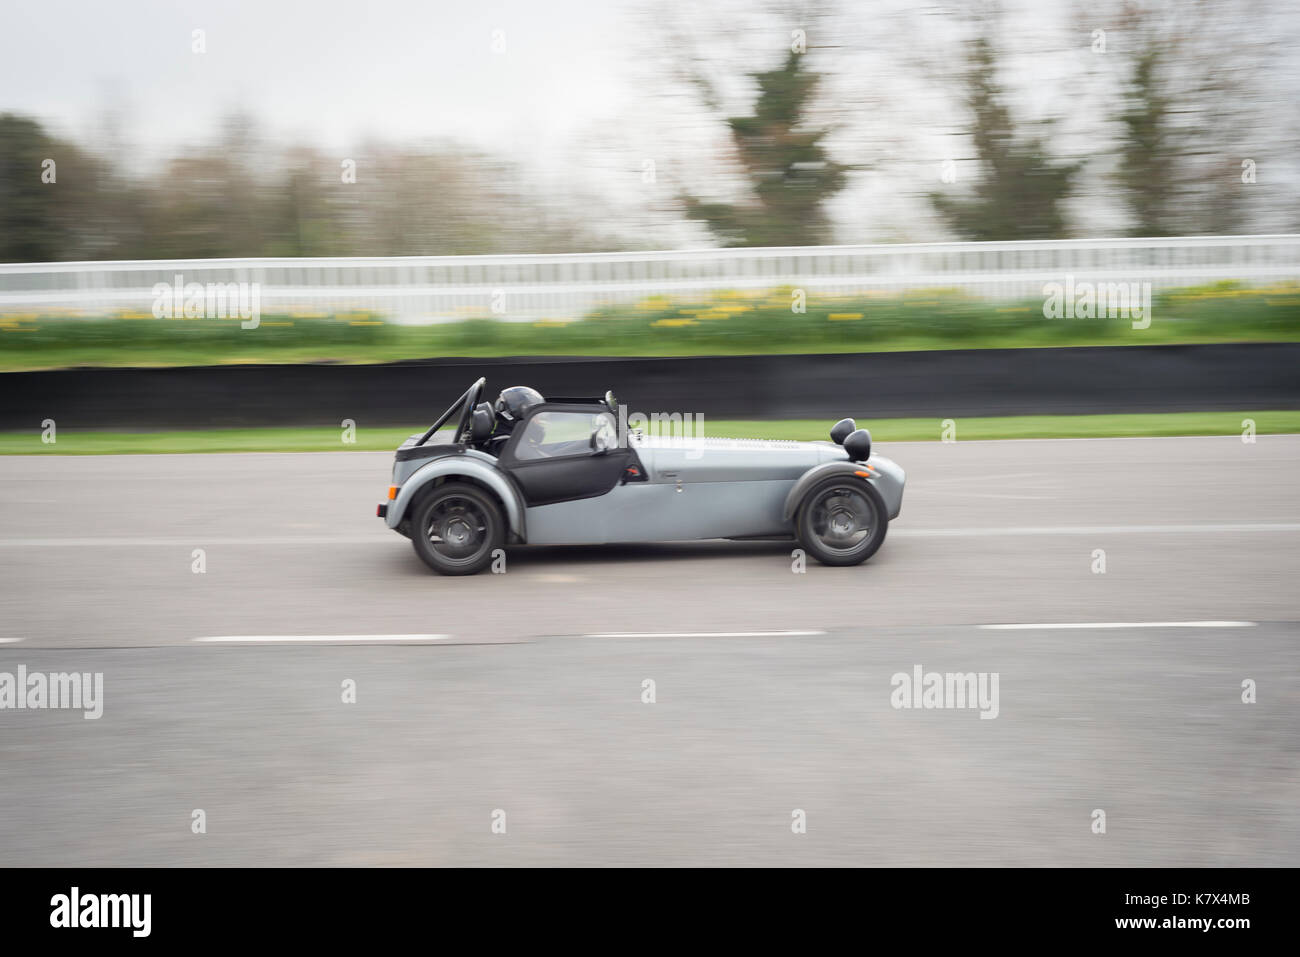 Fast car on racetrack at Goodwood with motion blur - Stock Image